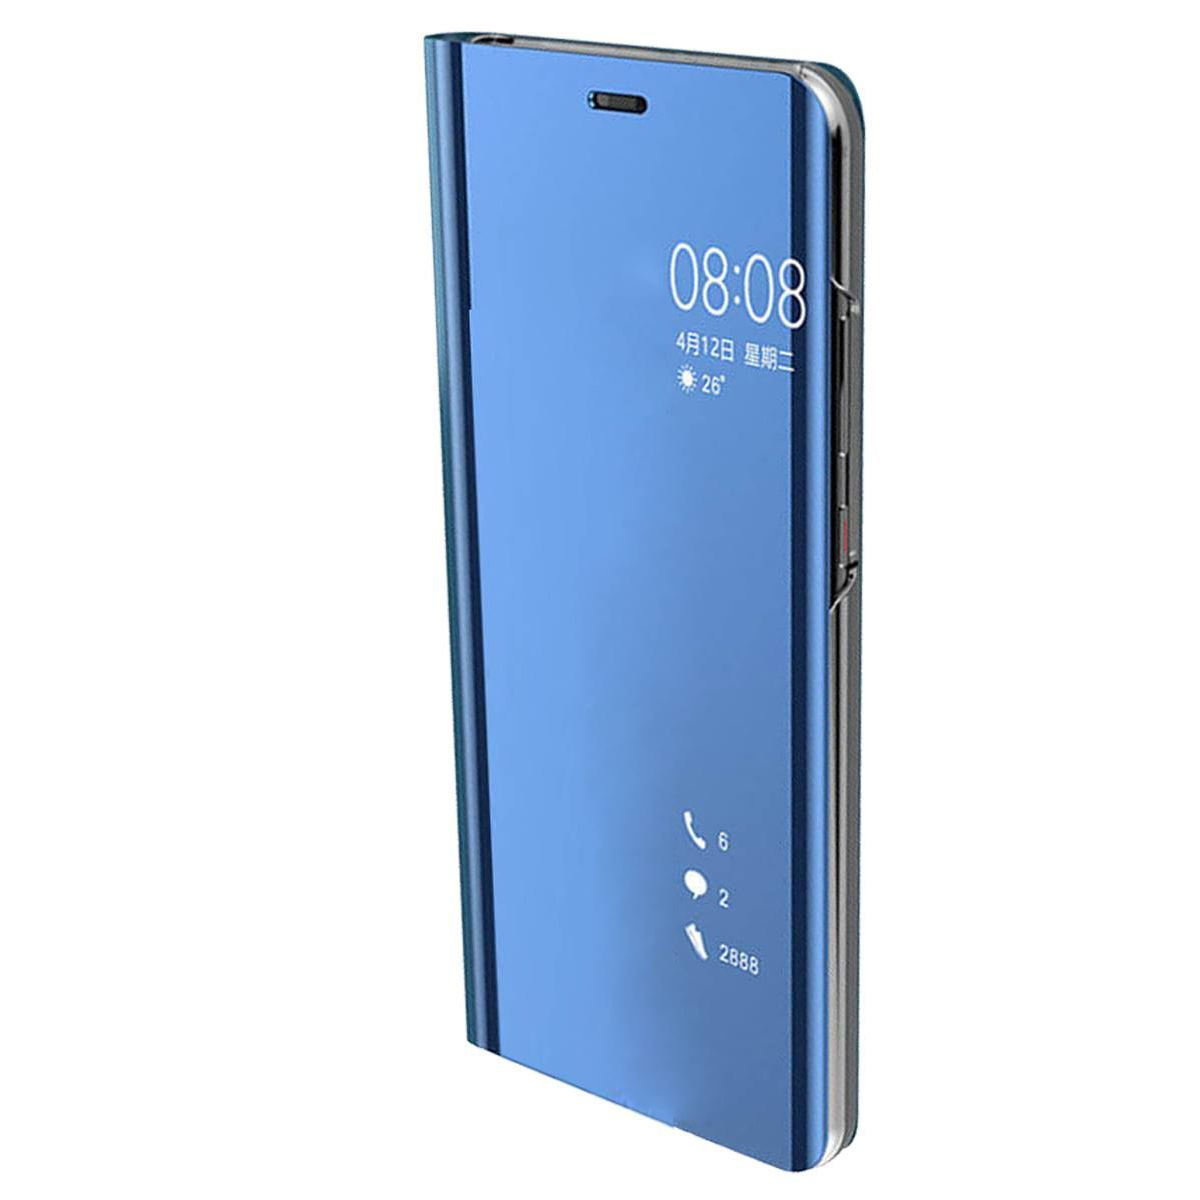 Huawei P10 Lite Case Smart View Mirror Flip Stand Cover - Blue